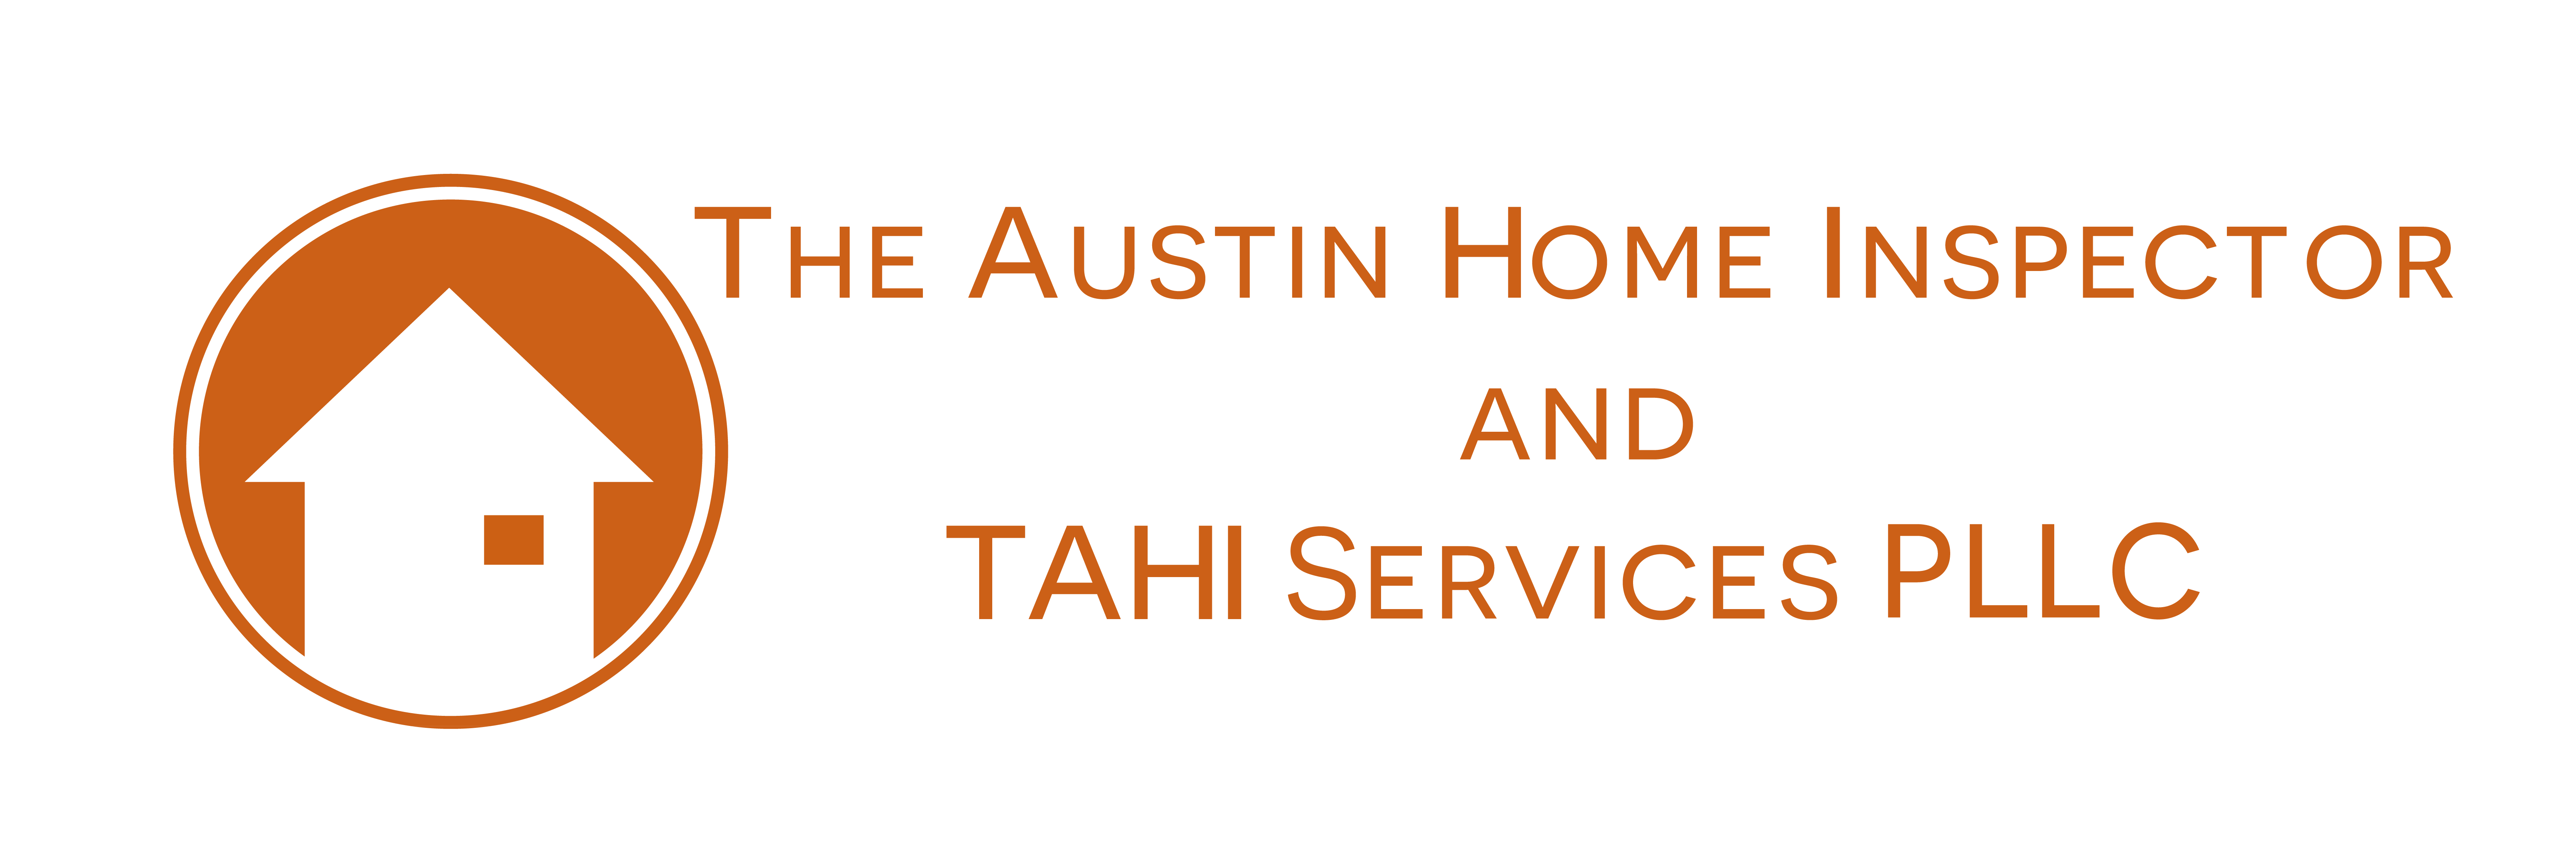 The Austin Home Inspector